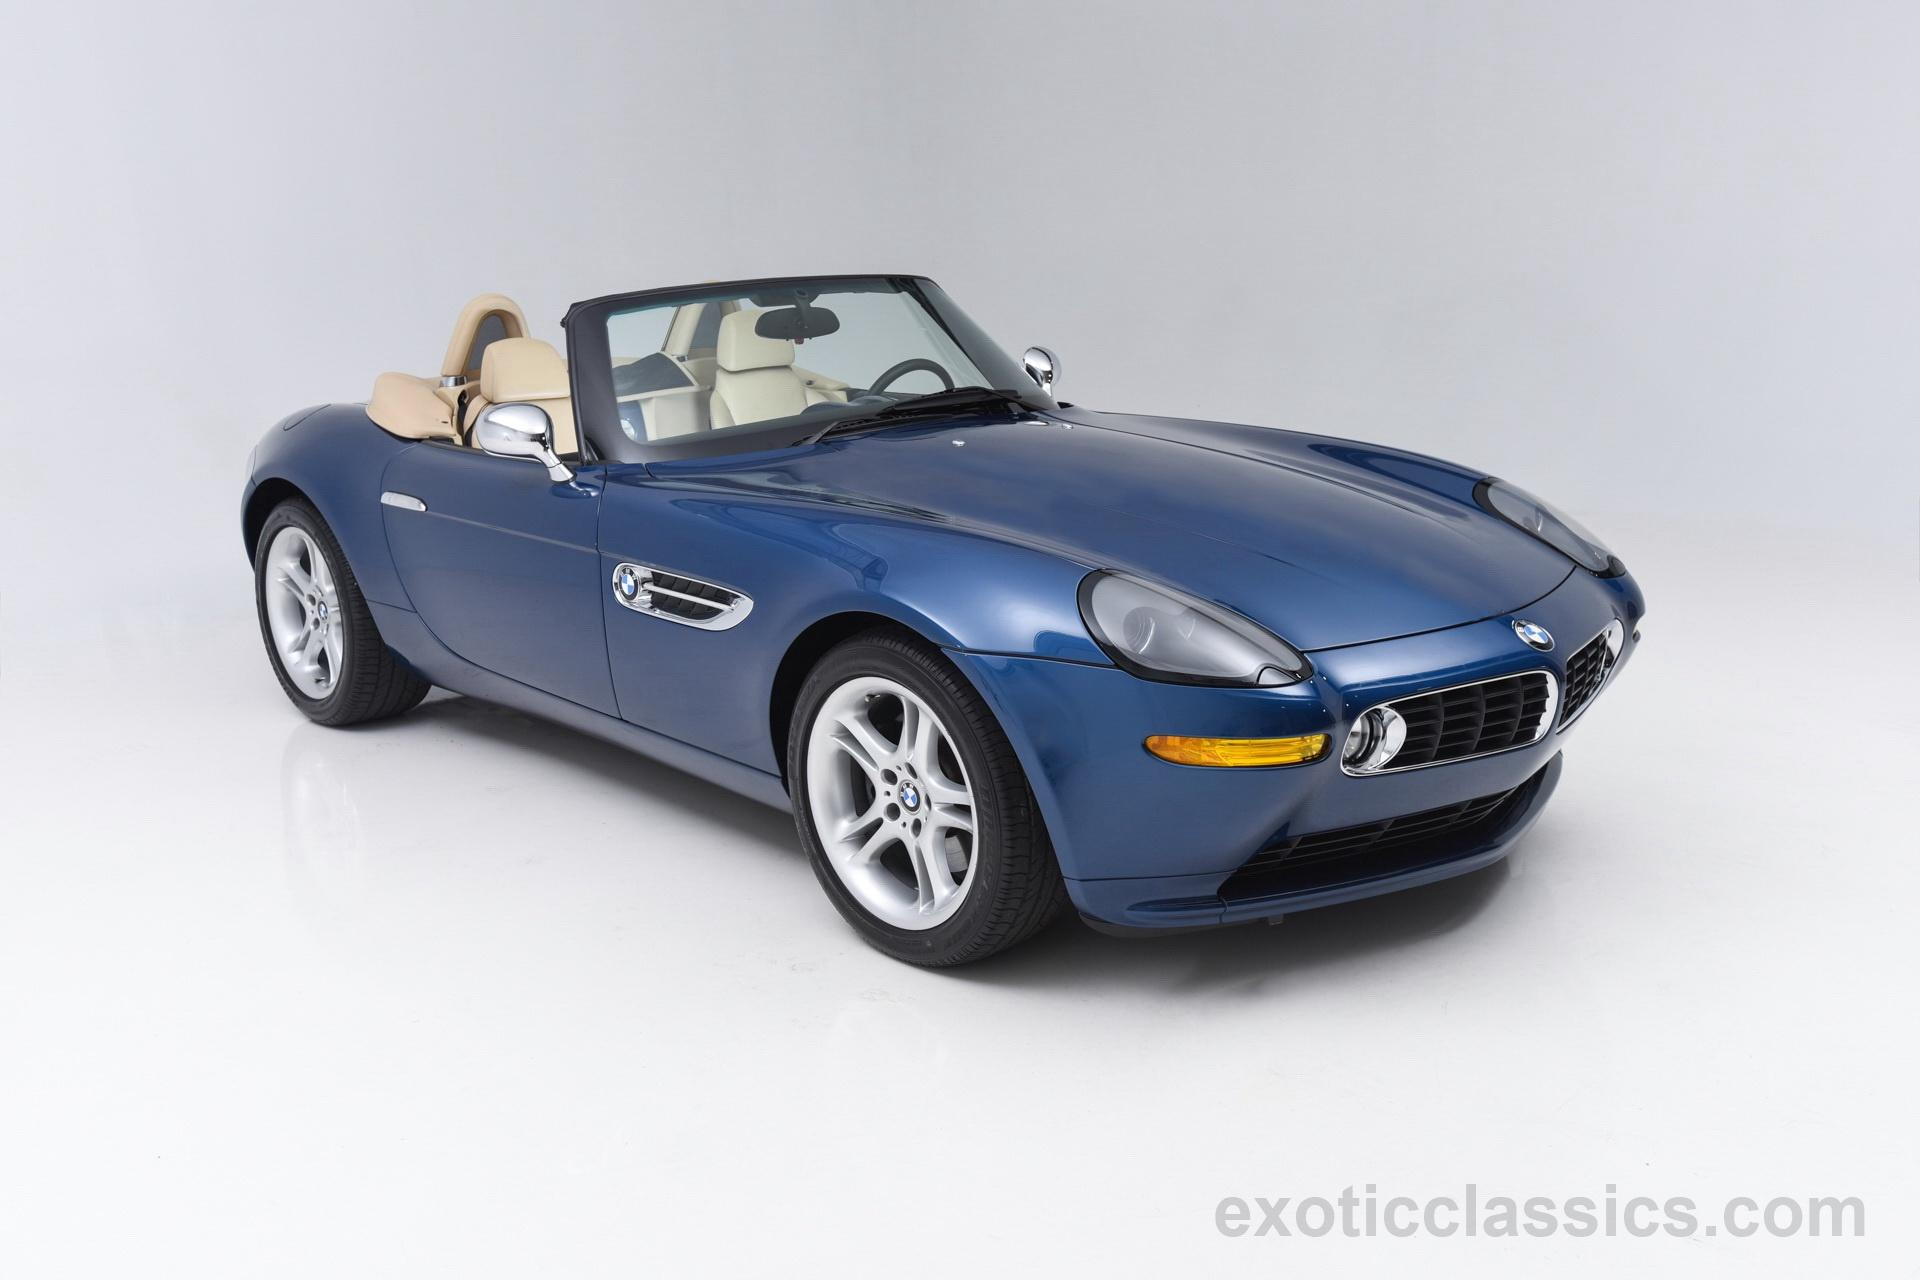 2003 Bmw Z8 Exotic Classic Car Dealership New York L